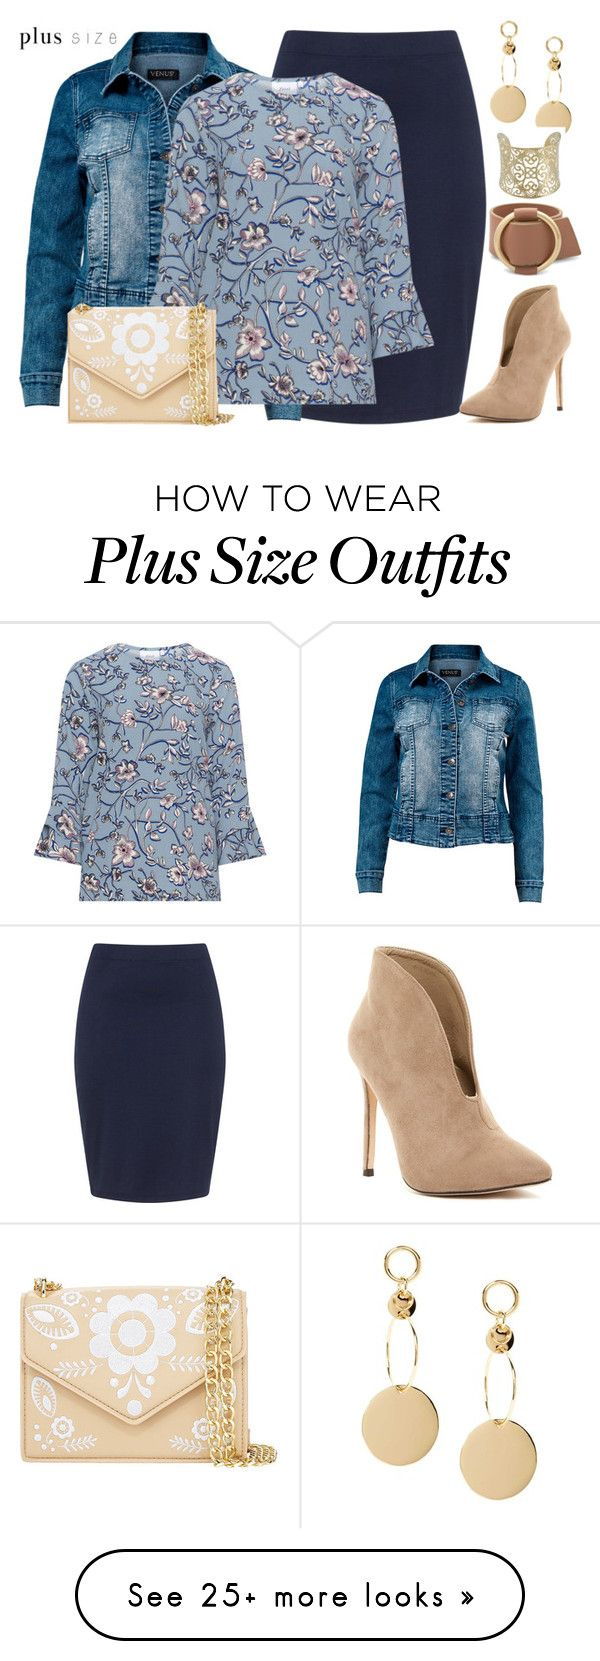 """""""Fun Office"""" by rochelle-cornelius-earp on Polyvore featuring Zizzi, Venus, Cynthia Rowley, Kabella Jewelry and plus size clothing"""